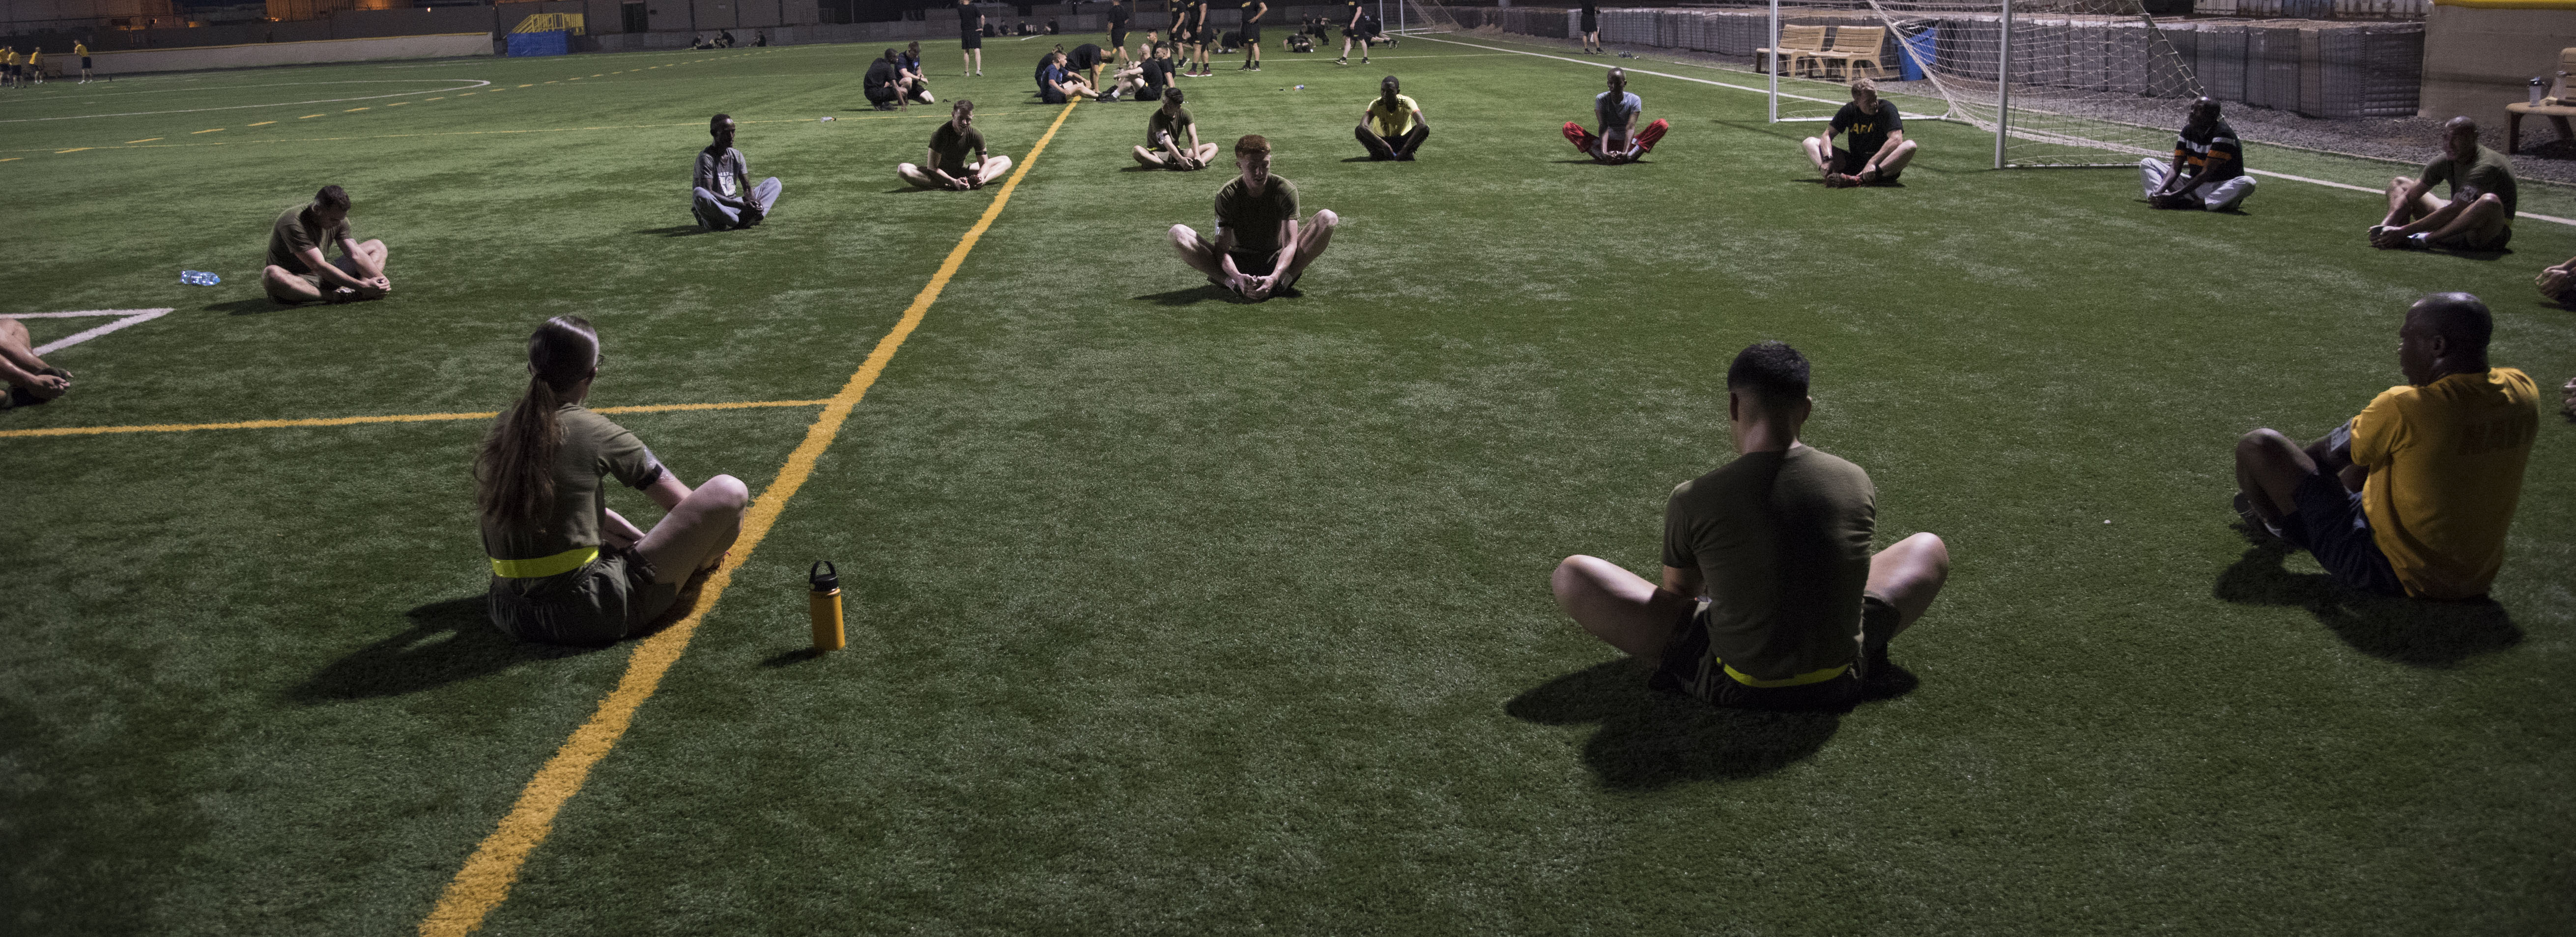 U.S. Marines, Sailors and Soldiers and Djiboutian military members stretch on the turf field of Camp Lemonnier, Djibouti, before beginning a physical fitness test as part of the Joint Corporals Course, hosted by Combined Joint Task Force – Horn of Africa, Jan. 9, 2018. The Joint Corporals Course is designed to provide junior service members with the knowledge and skills necessary to assume leadership roles of greater responsibility as a non-commissioned officer, as well as strengthen bonds between participating militaries. (U.S. Air National Guard photo by Staff Sgt. Allyson L. Manners)